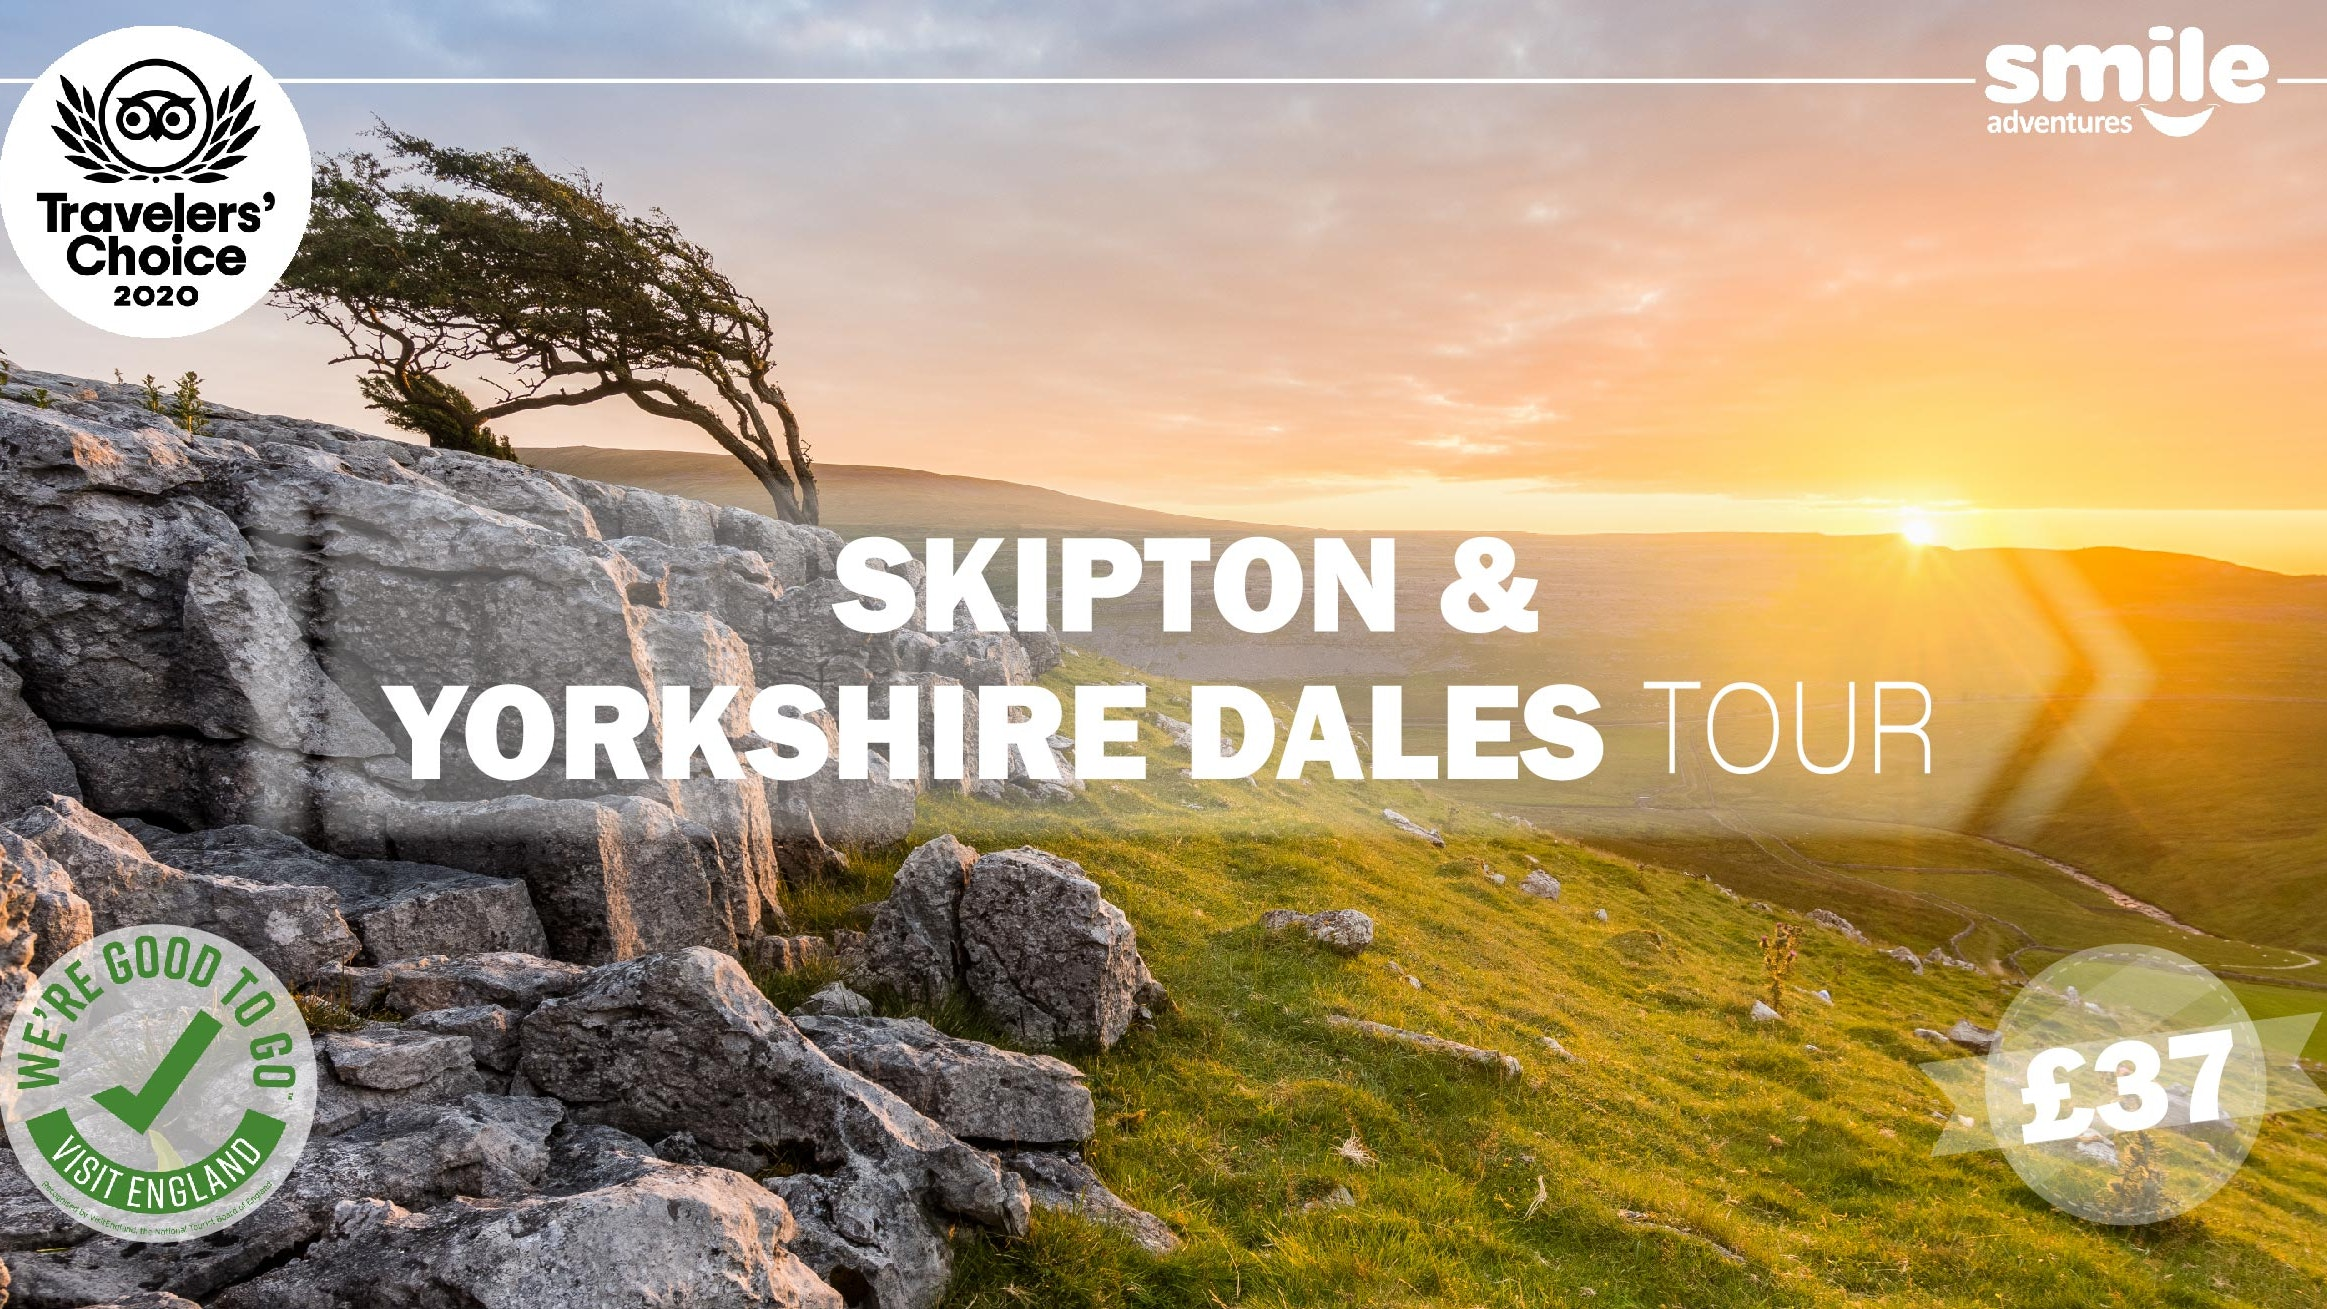 Skipton & Yorkshire Dales Tour – From Manchester